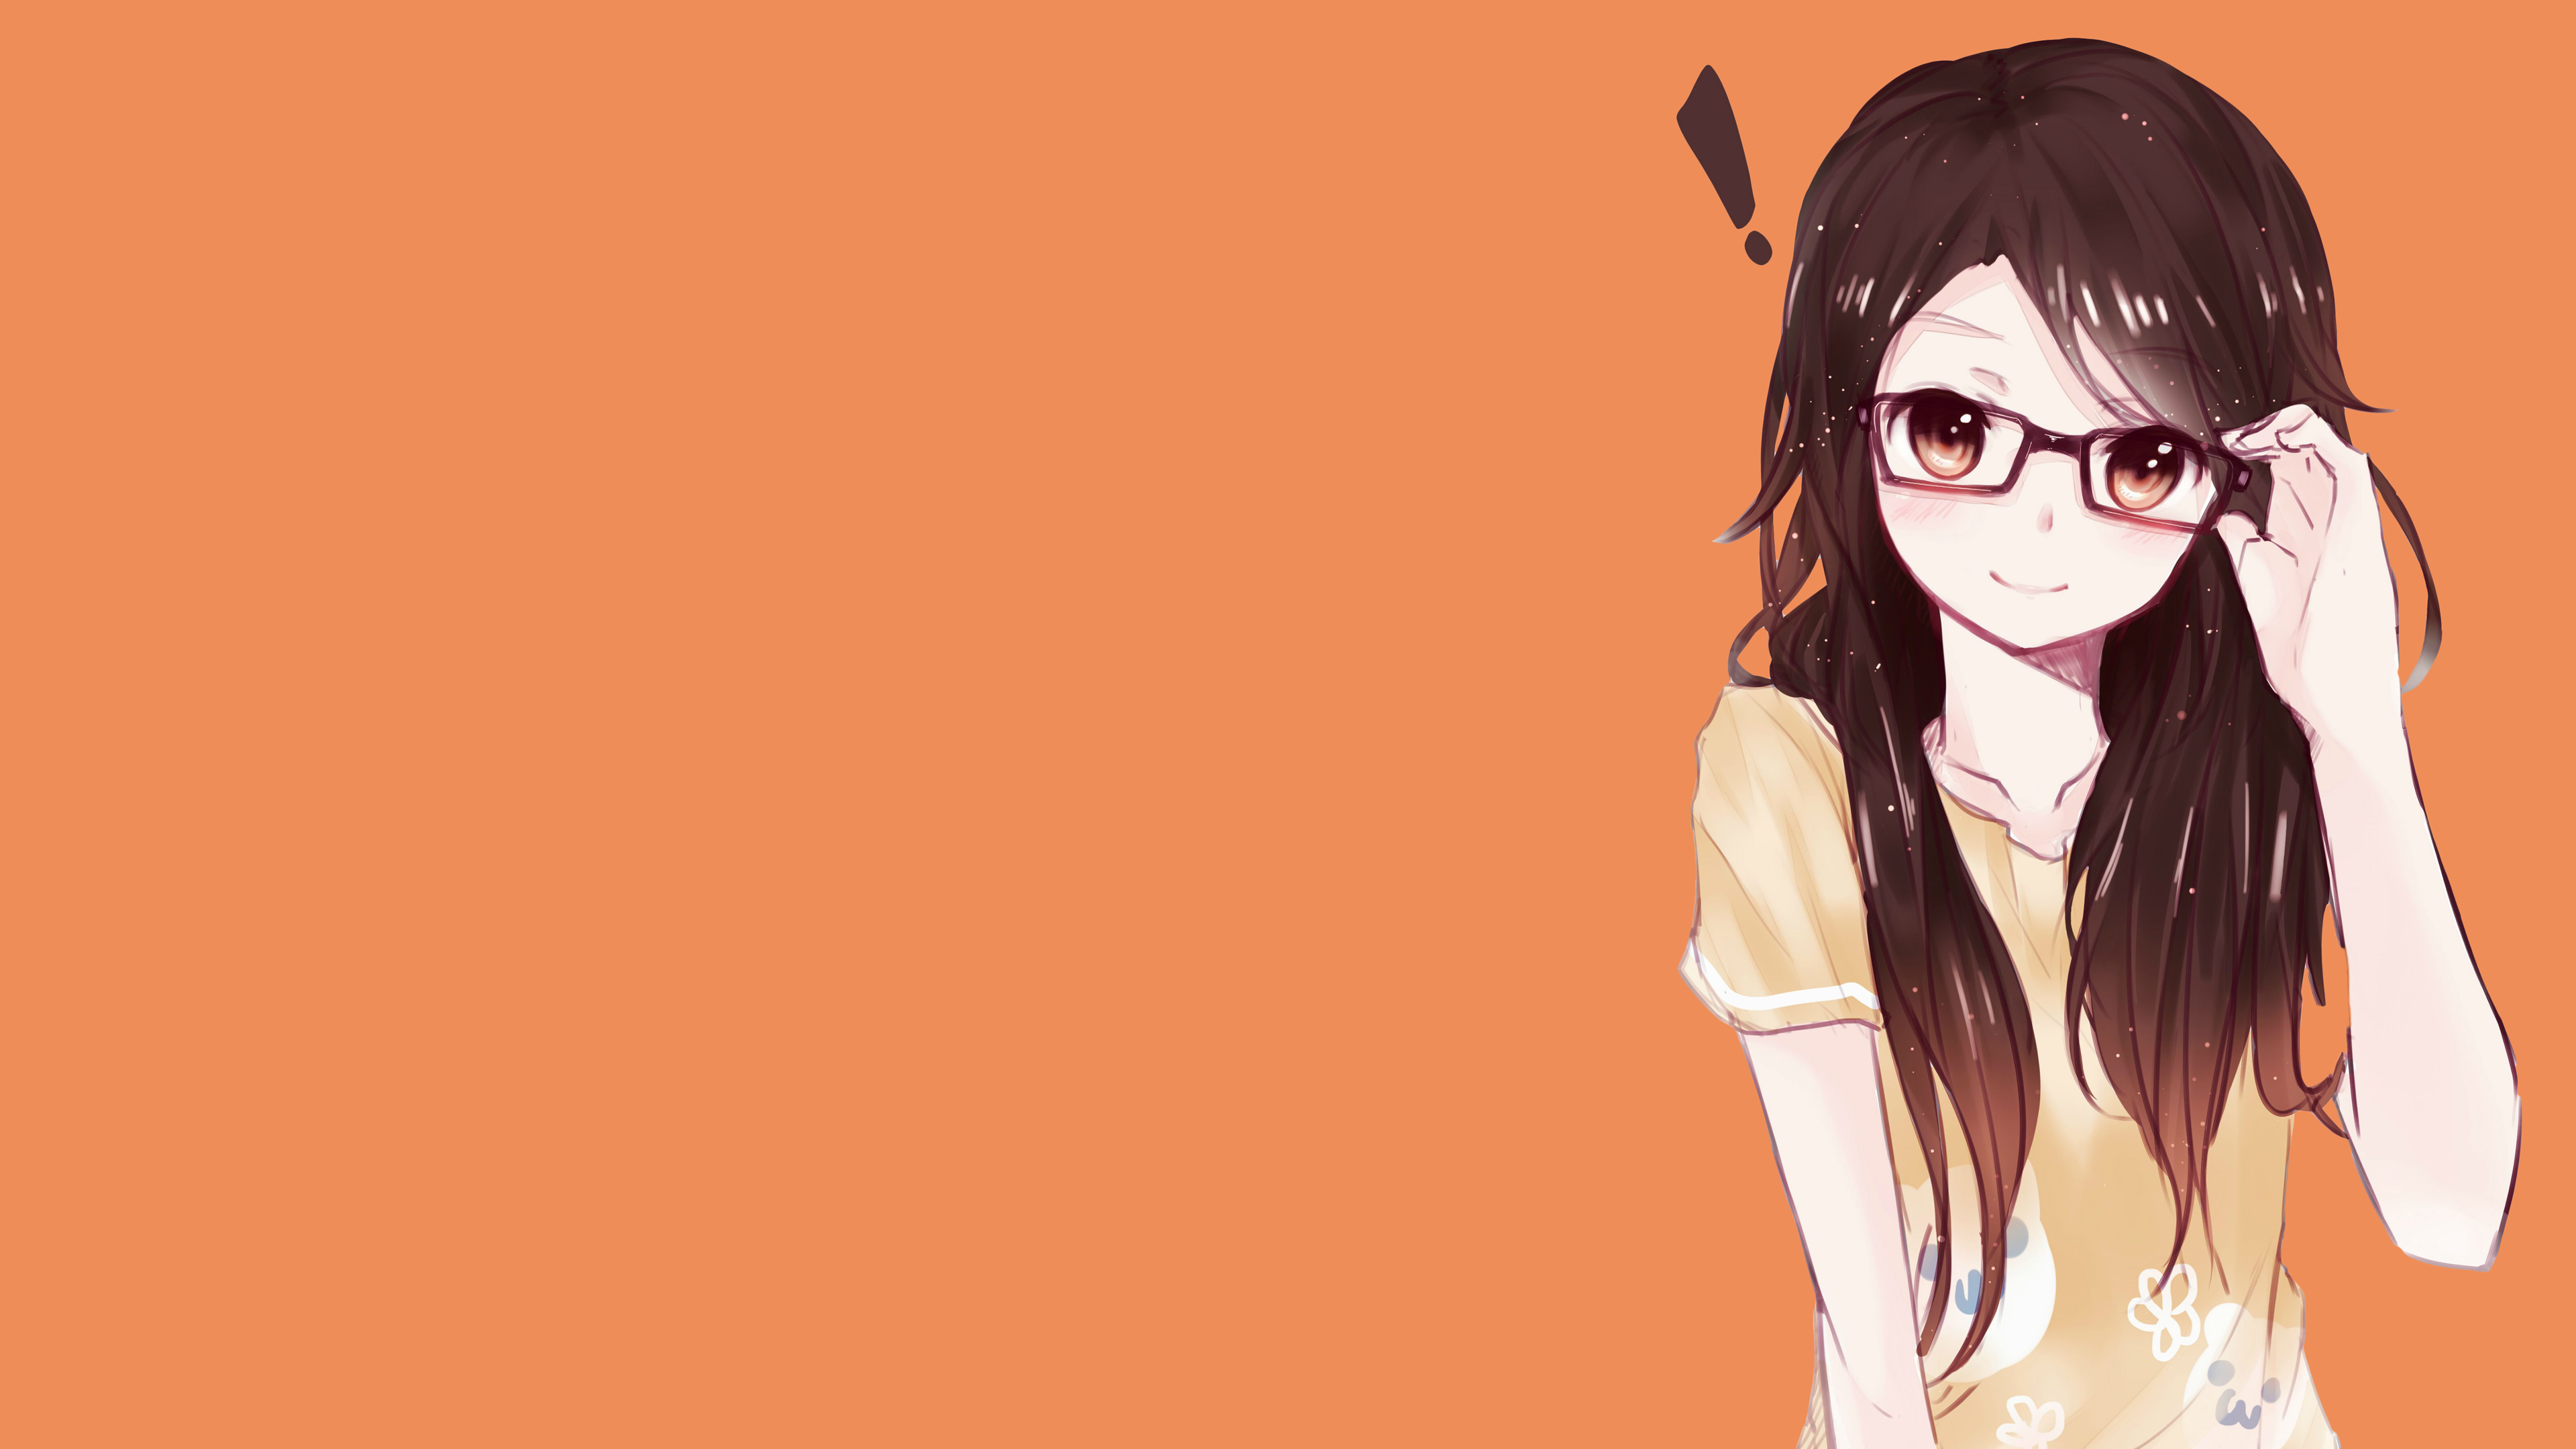 anime girl 1 1541973549 - Anime Girl 1 - anime wallpapers, anime girl wallpapers